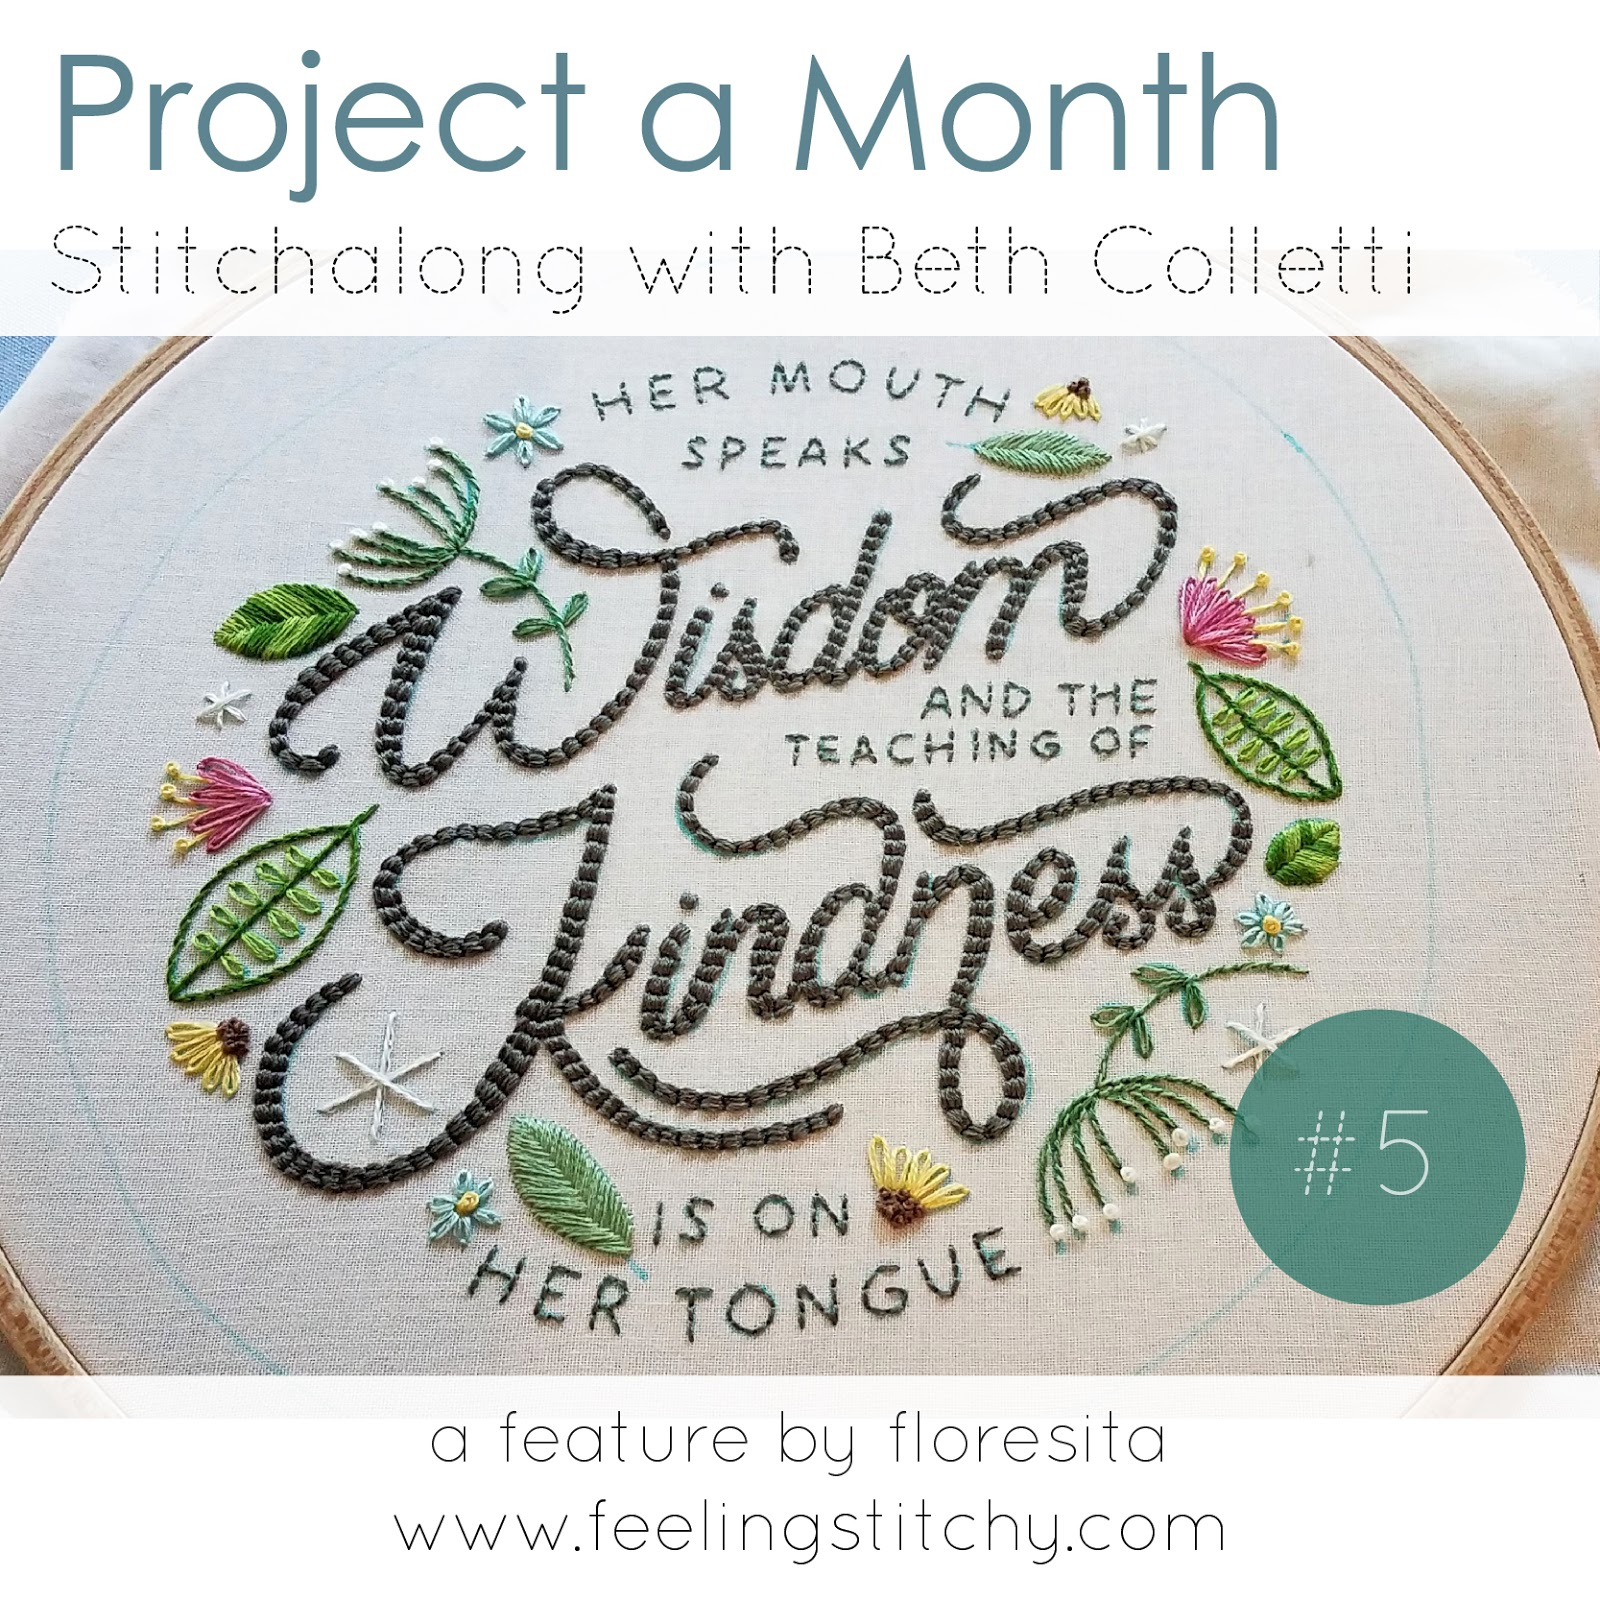 Project a Month May - Stitchalong with Beth Colletti as featured by floresita on Feeling Stitchy